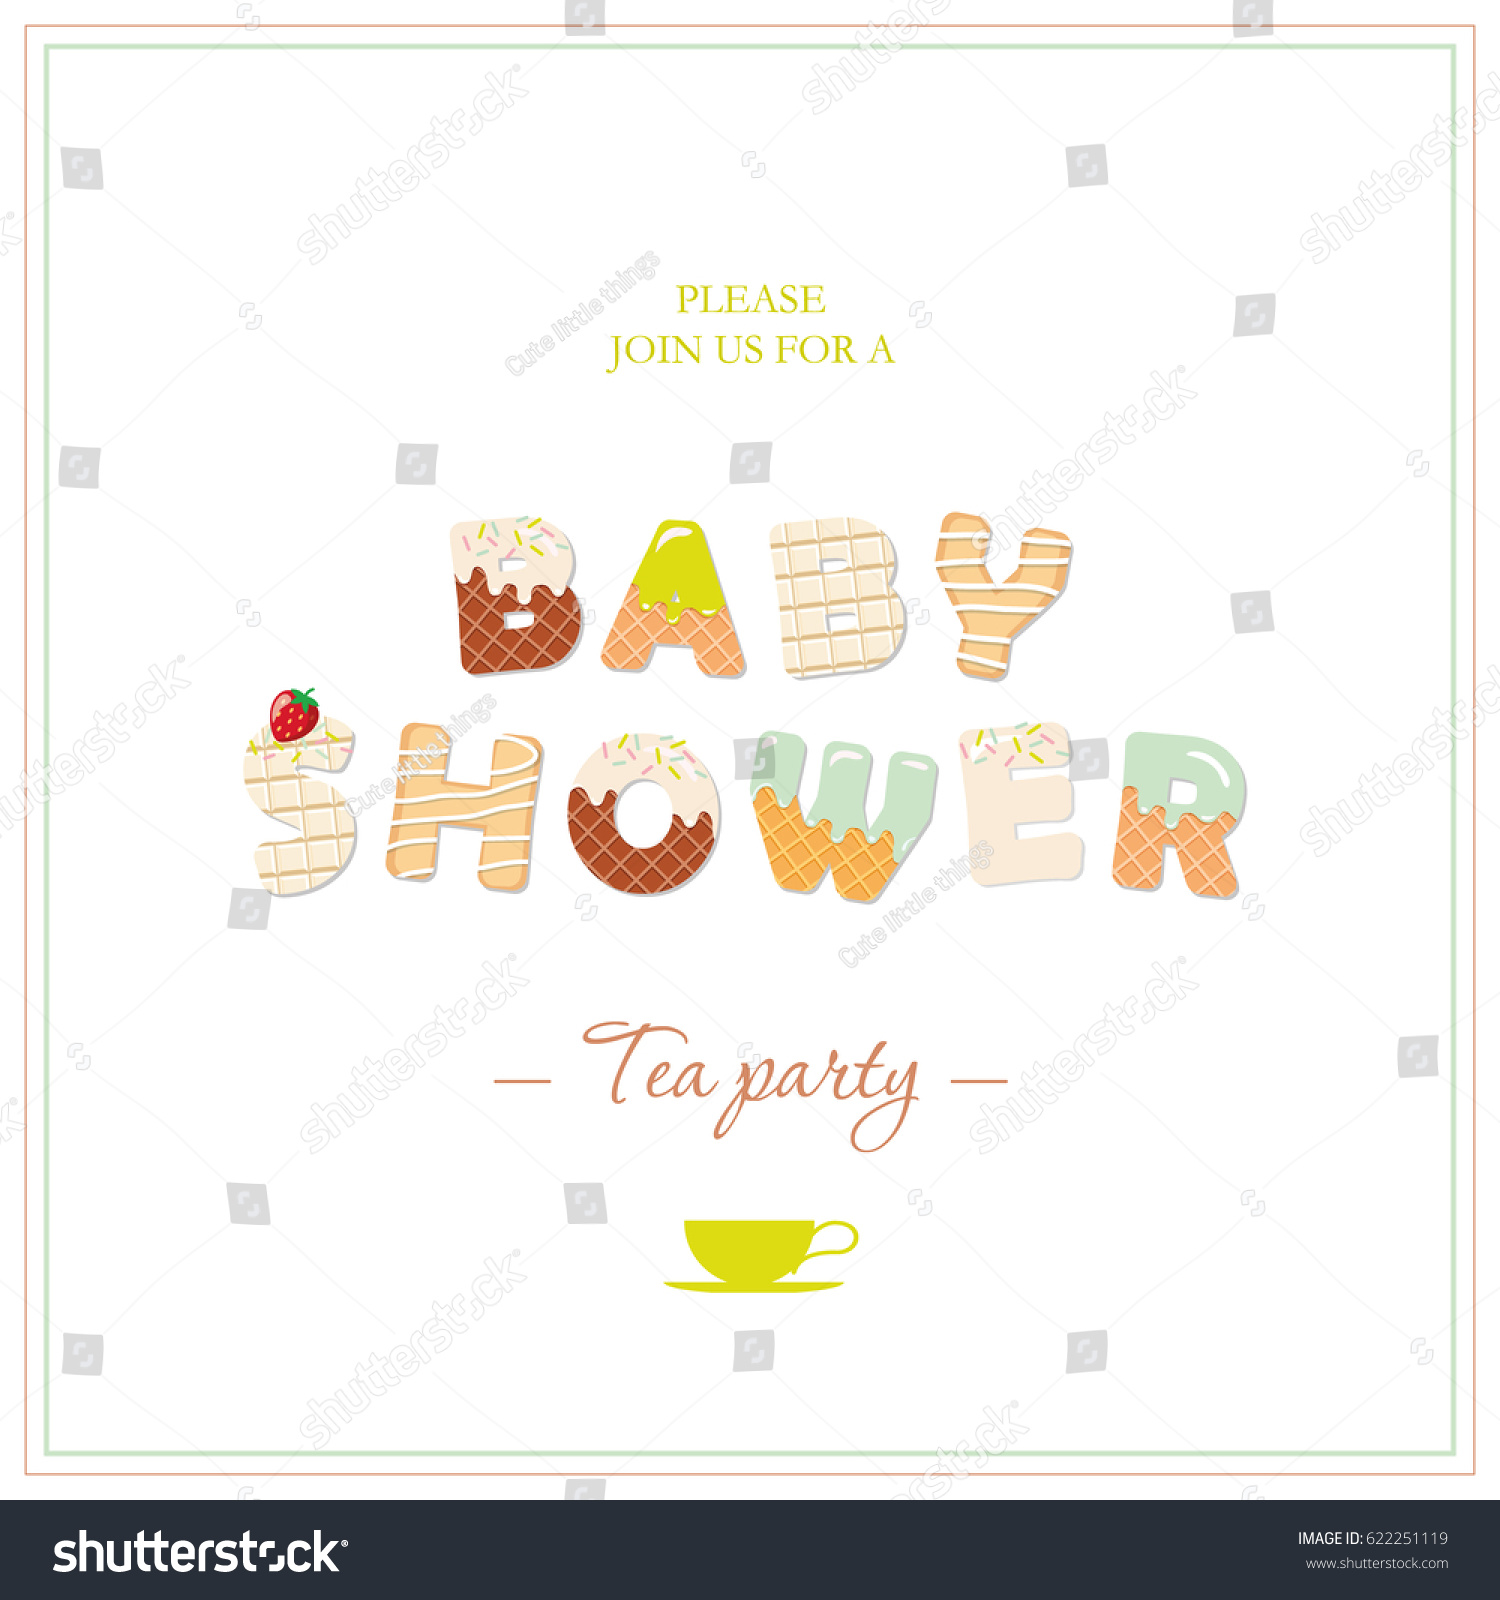 Boy Baby Shower Tea Party Invitation Design. Sweet Decorative Letters In  Pastel Green And Beige